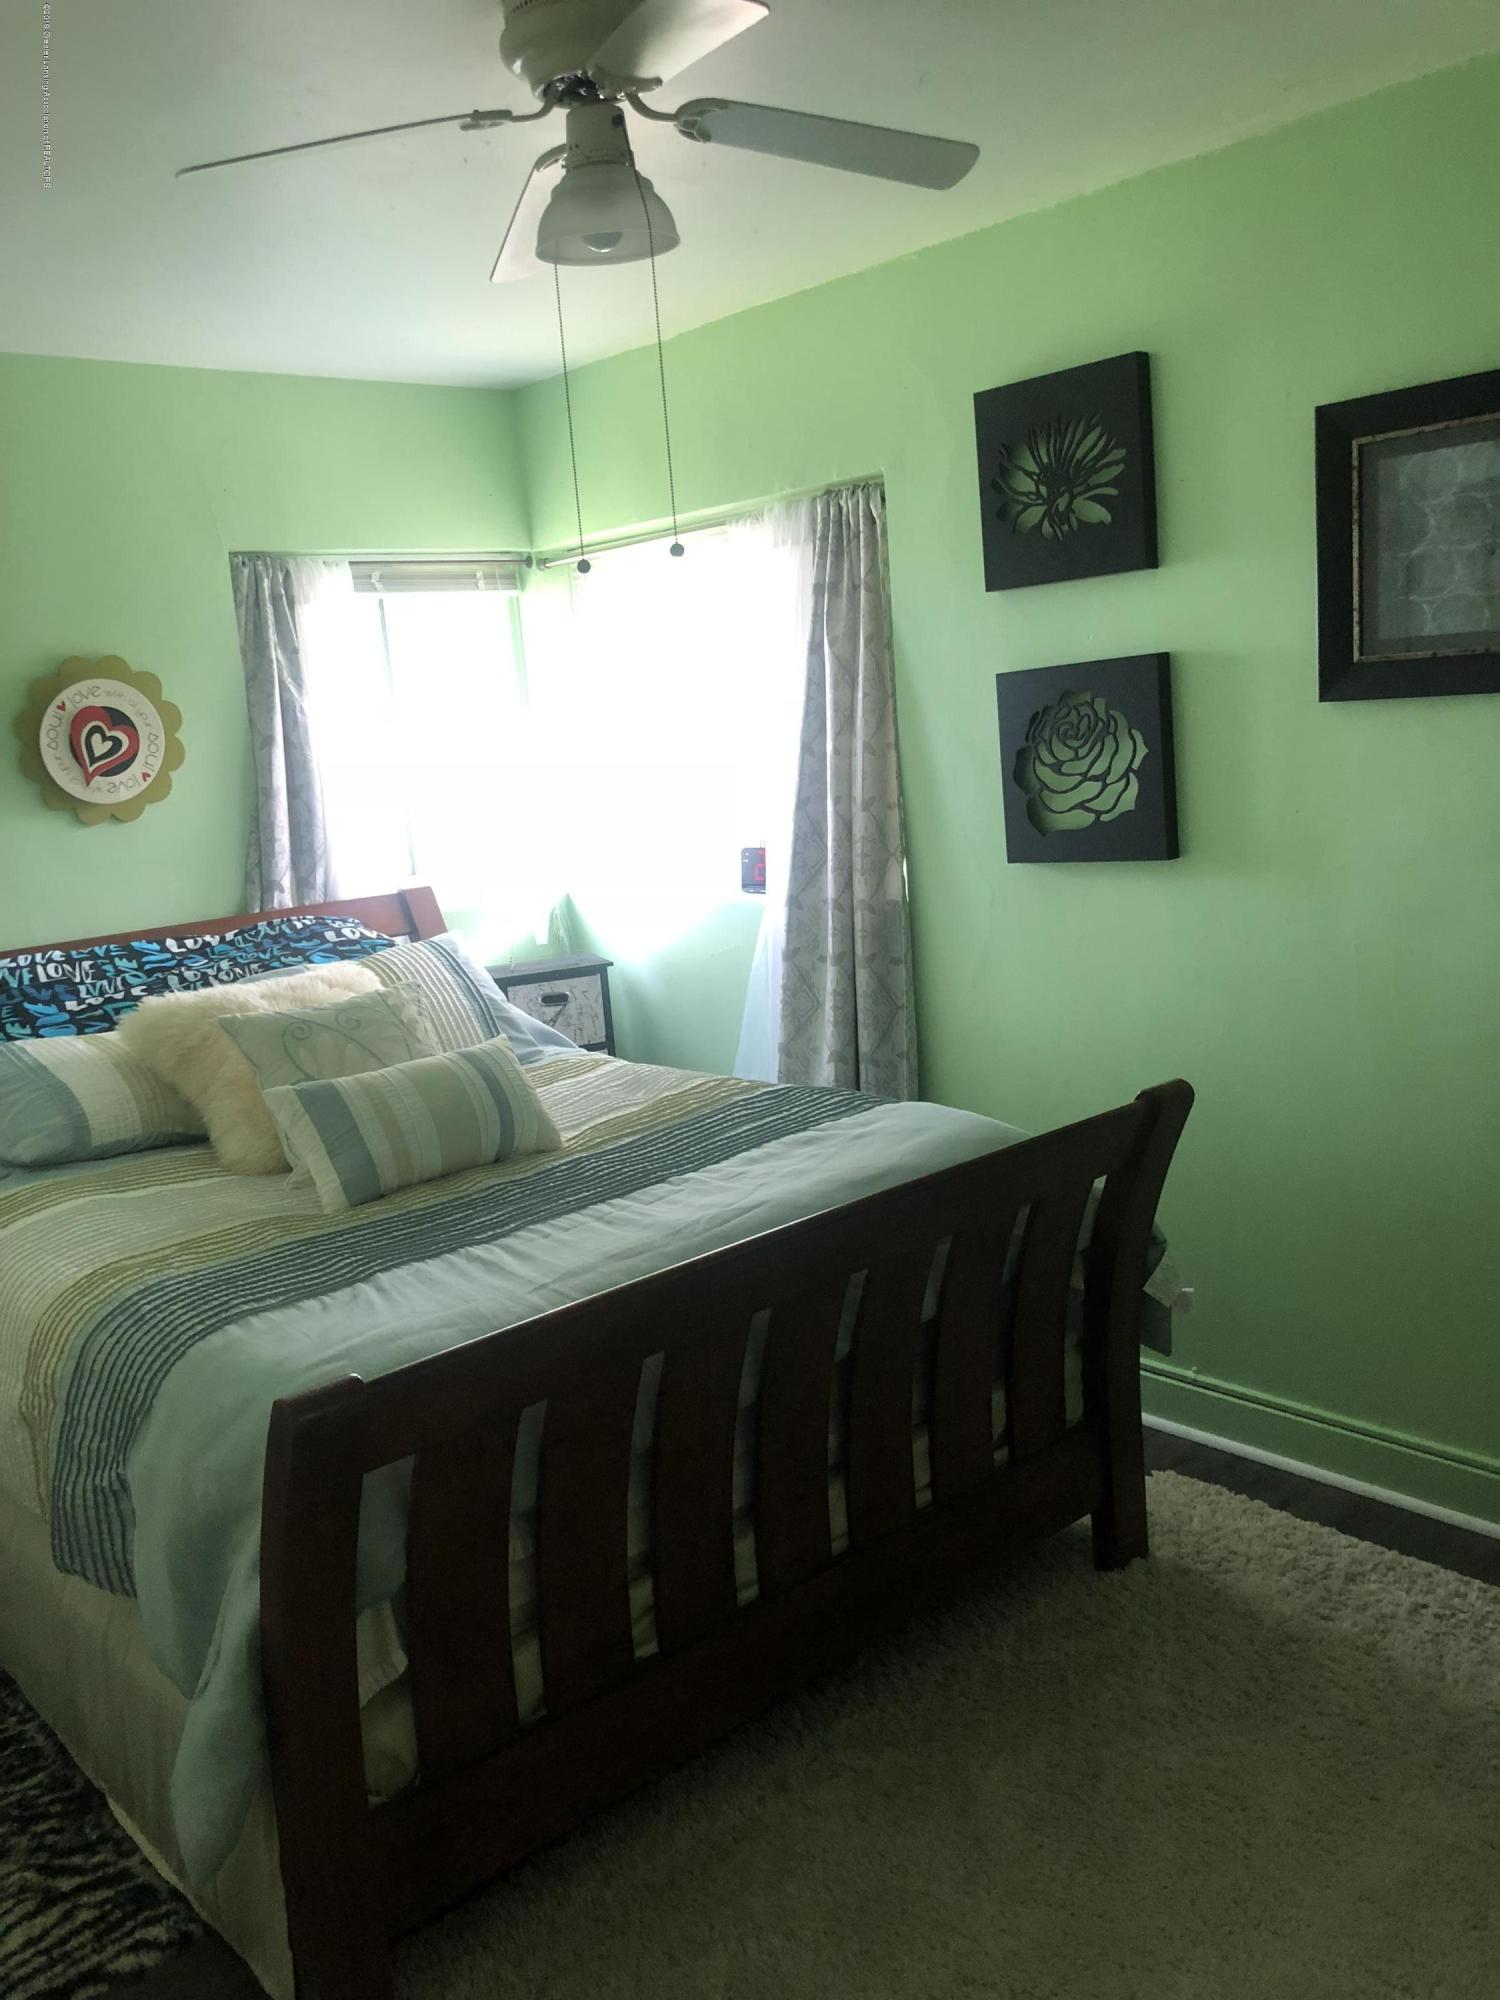 518 Lasalle Blvd - bedroom 3-2 - 9